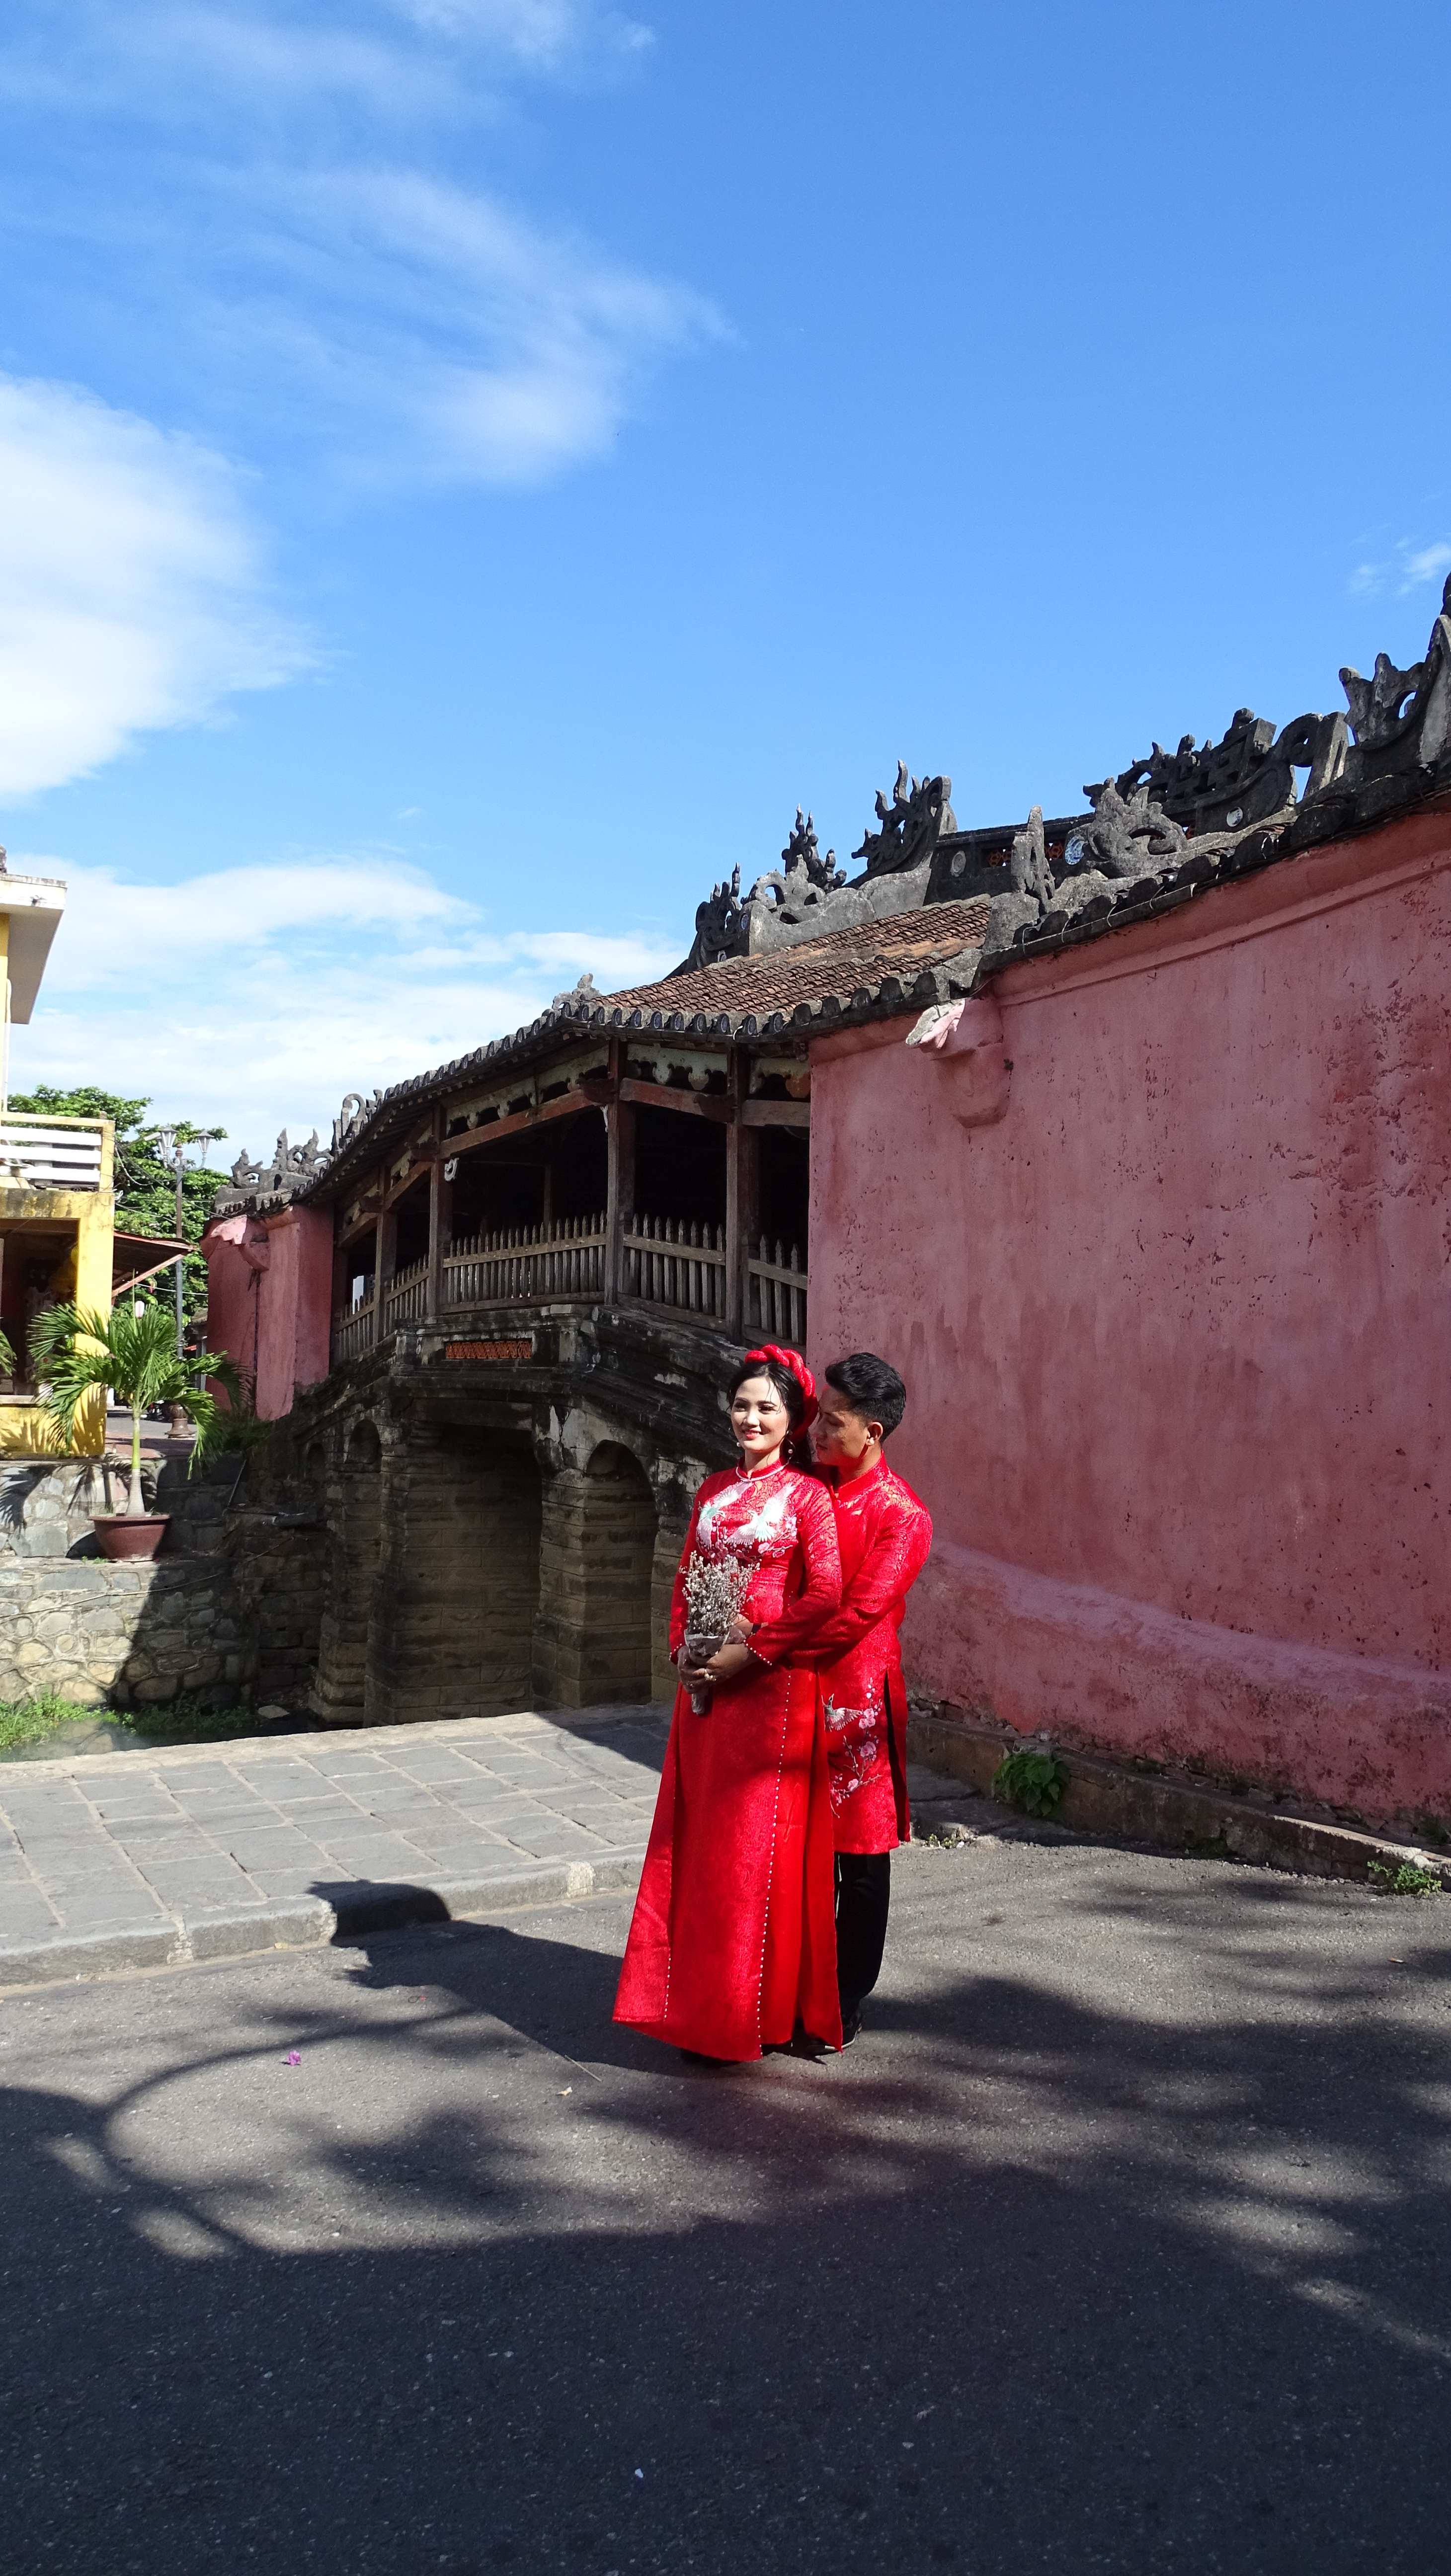 Vietnamese couple dressed in traditional, red costumes poses for their wedding photo in front of the covered Japanese Bridge